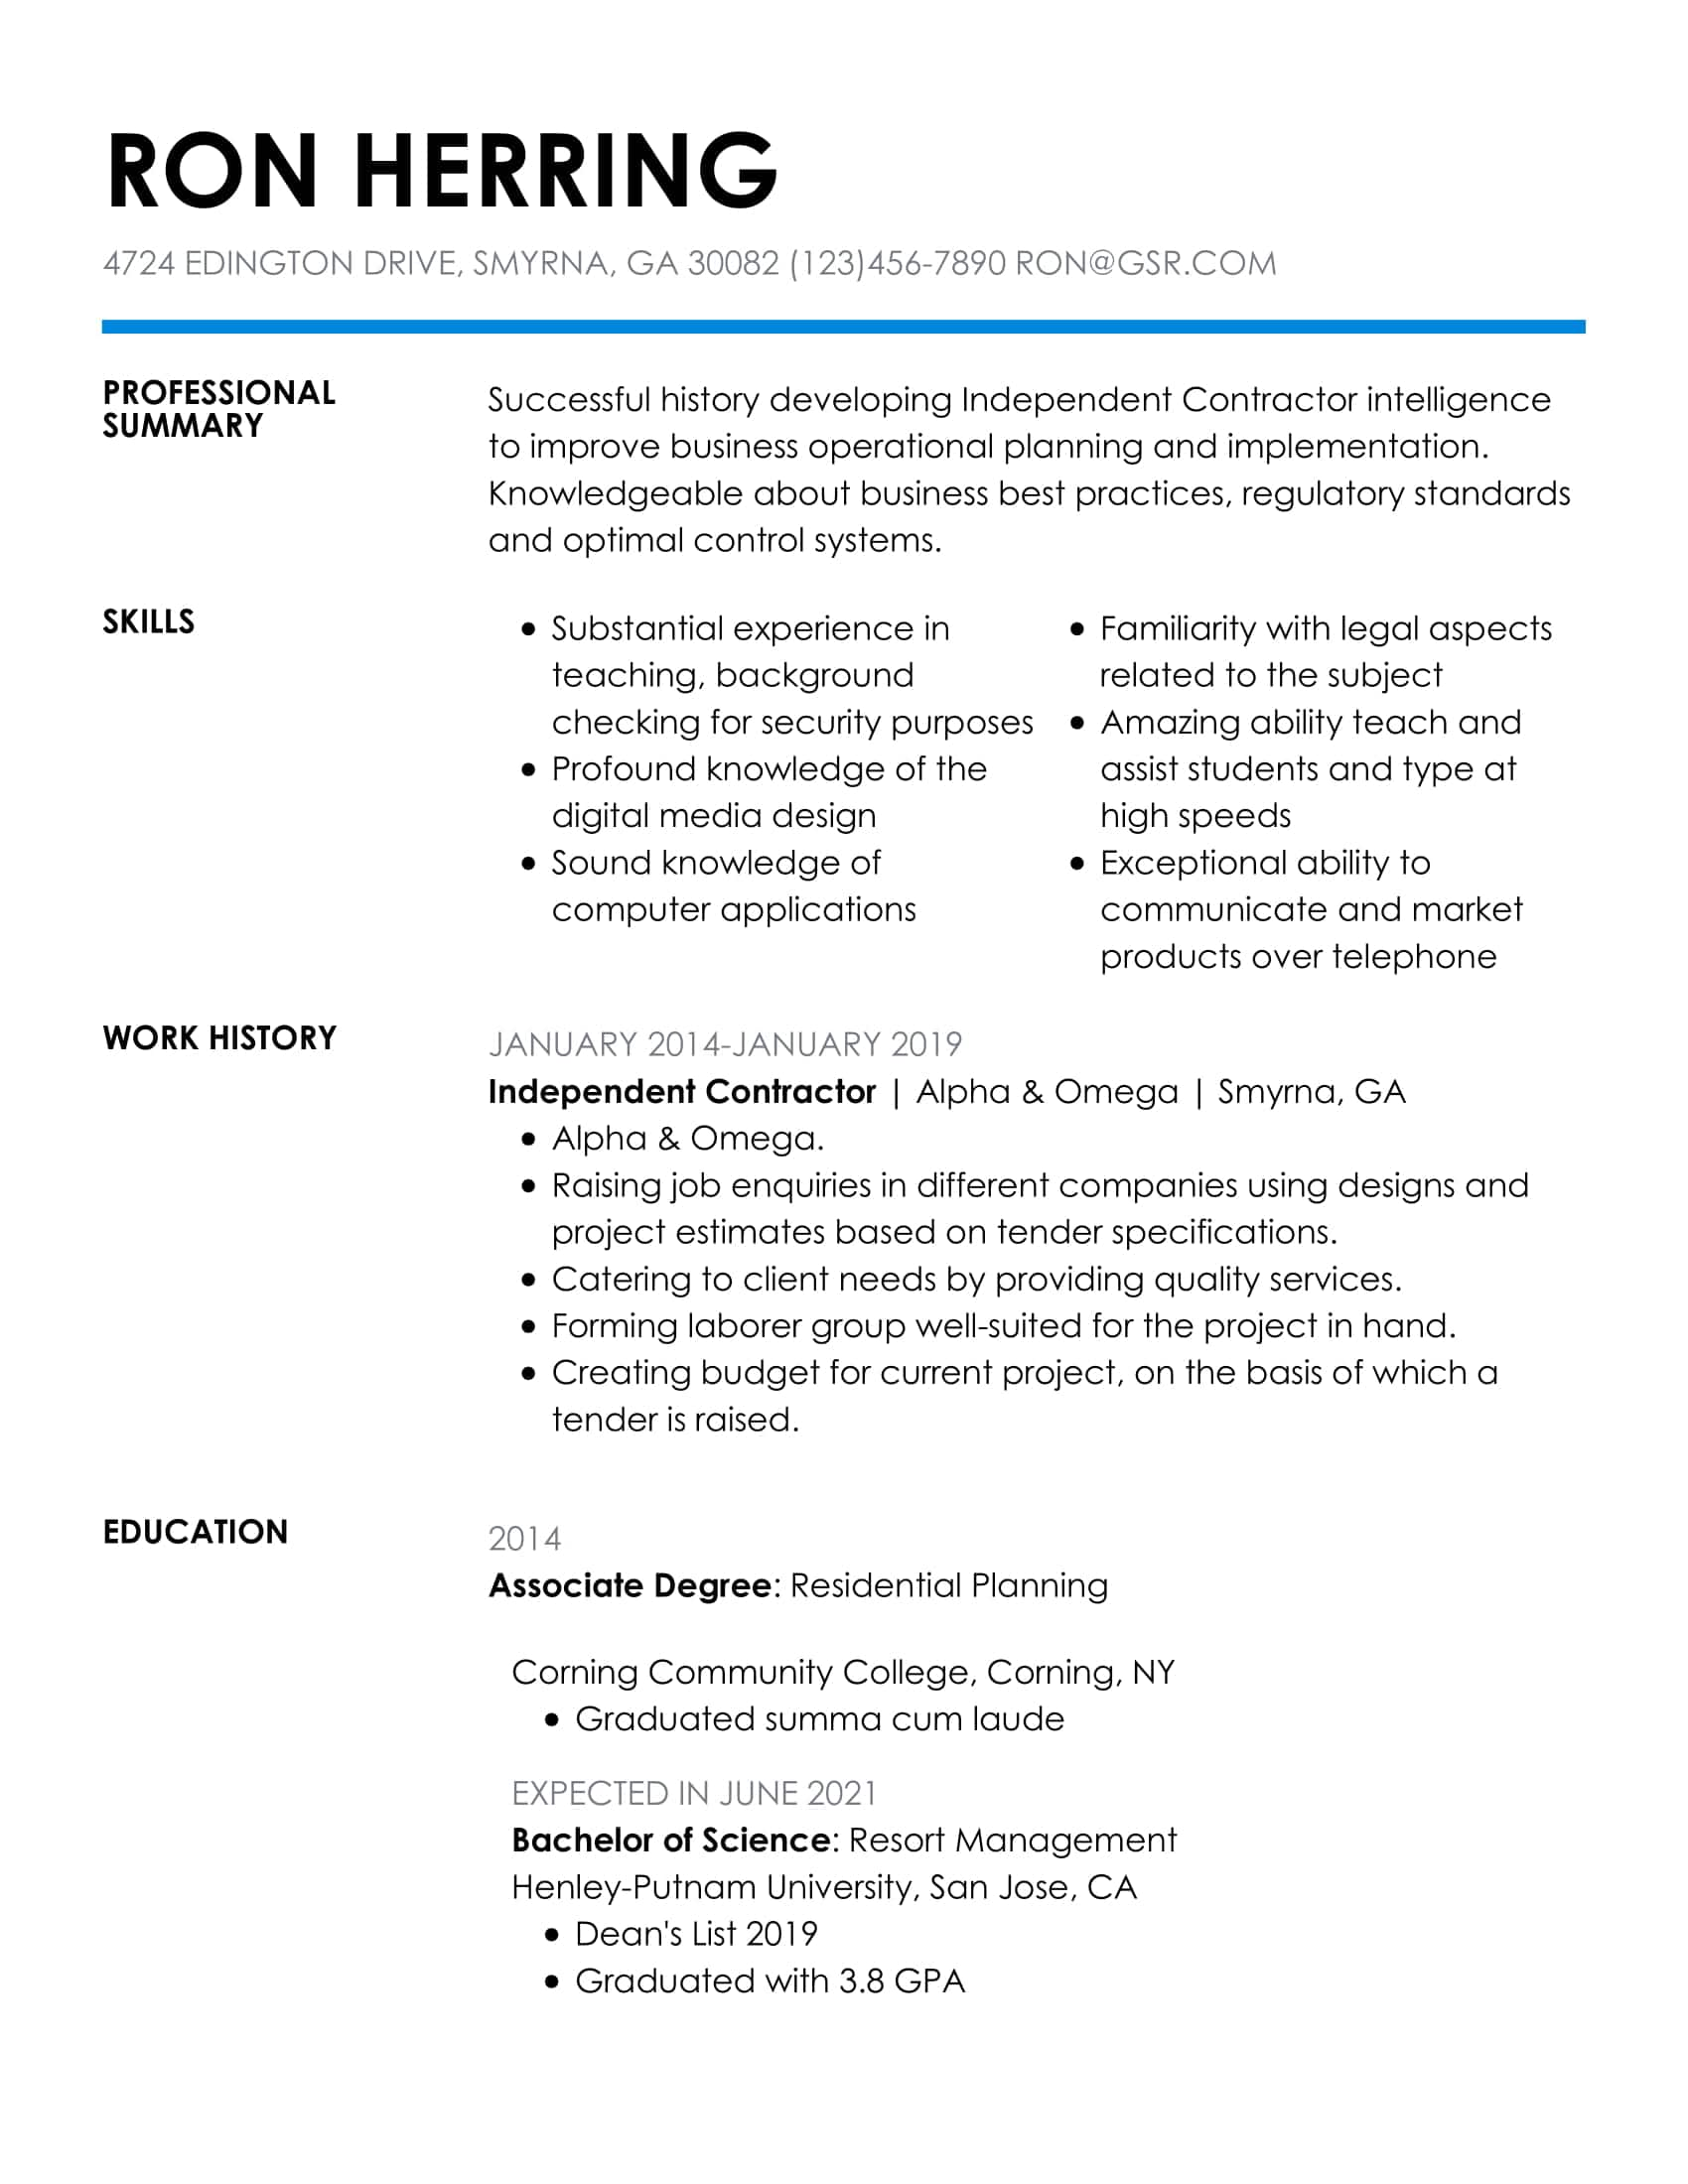 resume templates edit in minutes professional simple template insightful blue medical Resume Professional Simple Resume Template